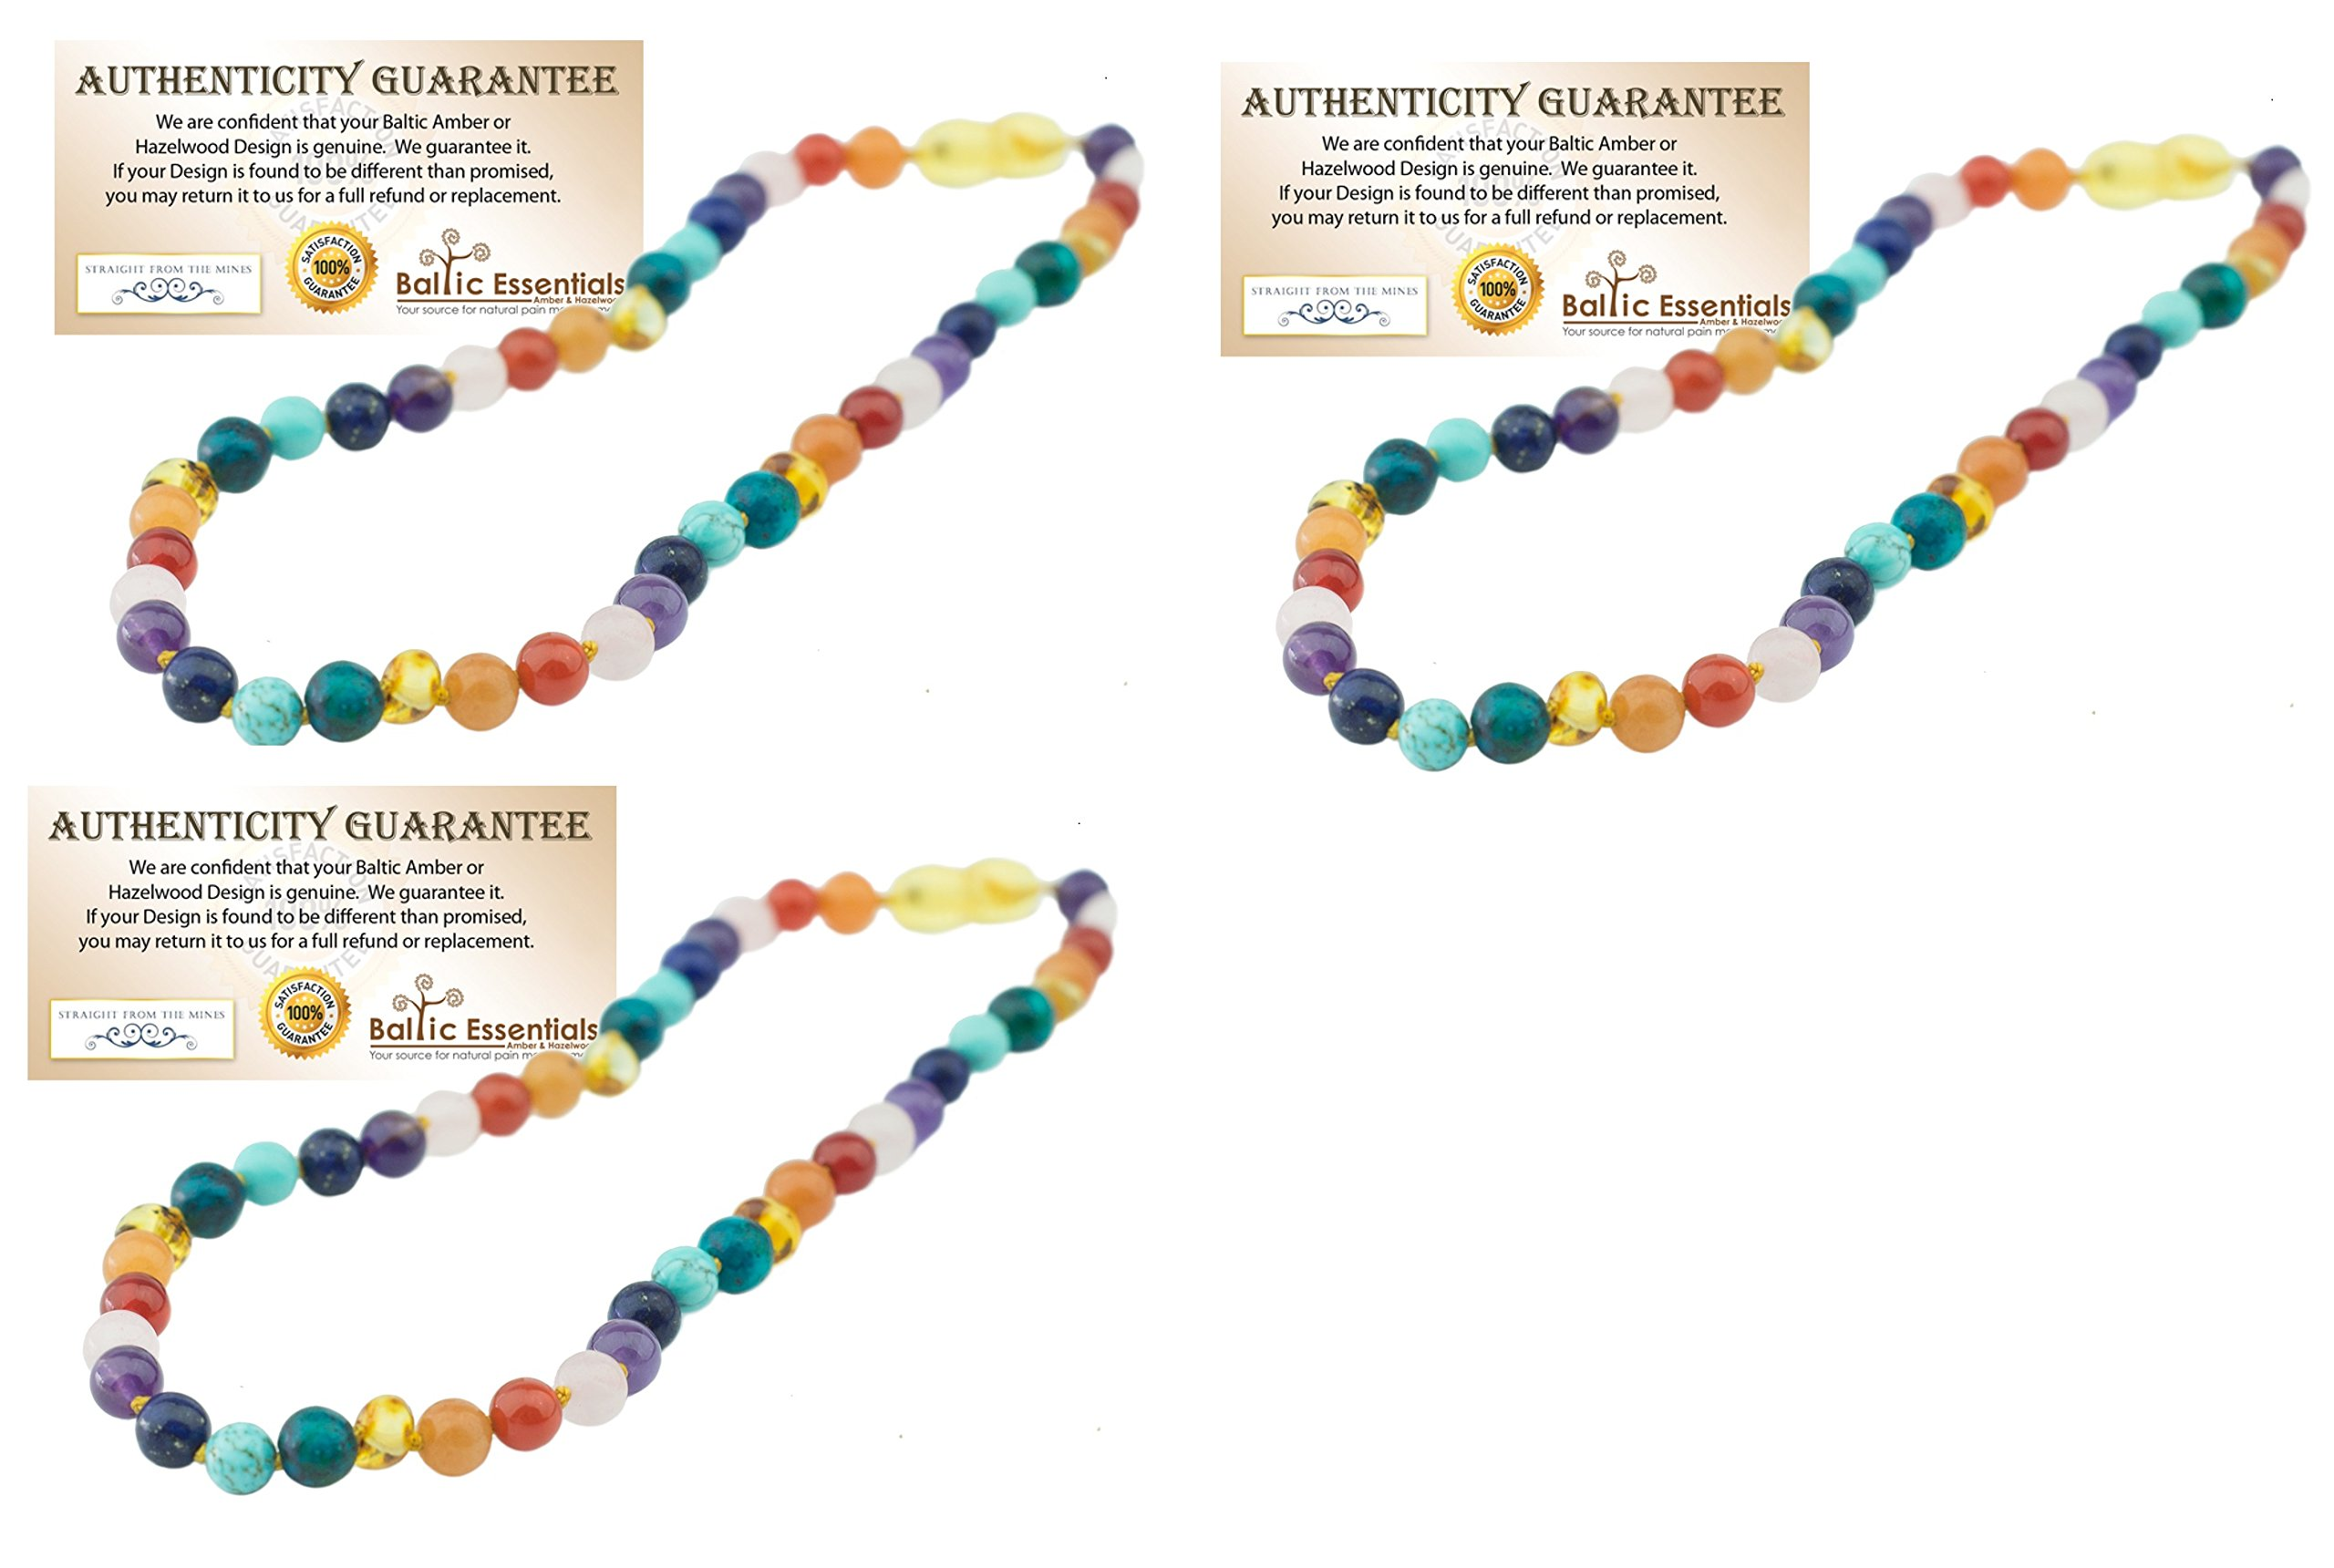 THREE Pack - Baltic Essentials 12.5 inch Baltic Amber Necklace Rainbow Honey Amber Pink Rose Quartz Red Agate Amethyst Aventurine Cyrsocolla Baby, Infant, Toddler, Big Kid. (3 Pack)